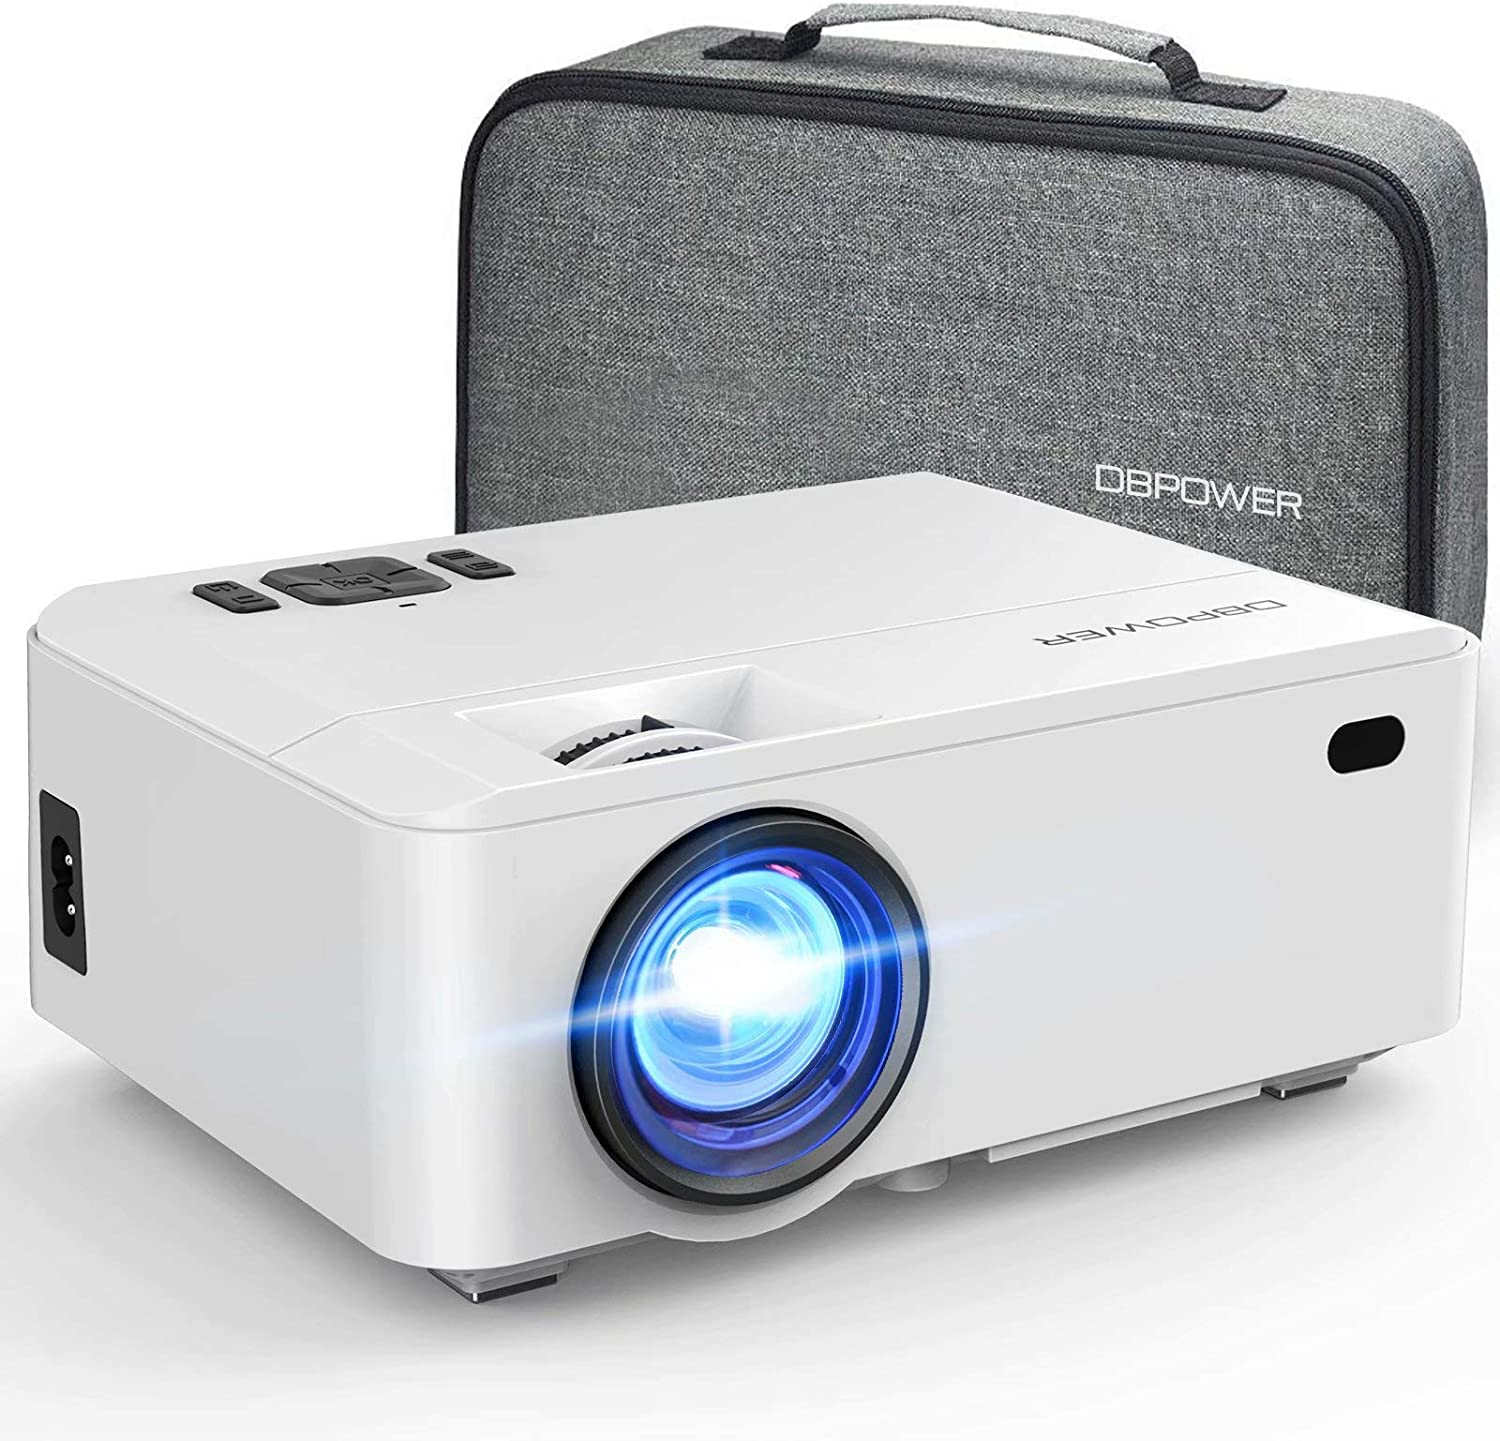 40% Off Coupon – Portable Video Projector with Carrying Case